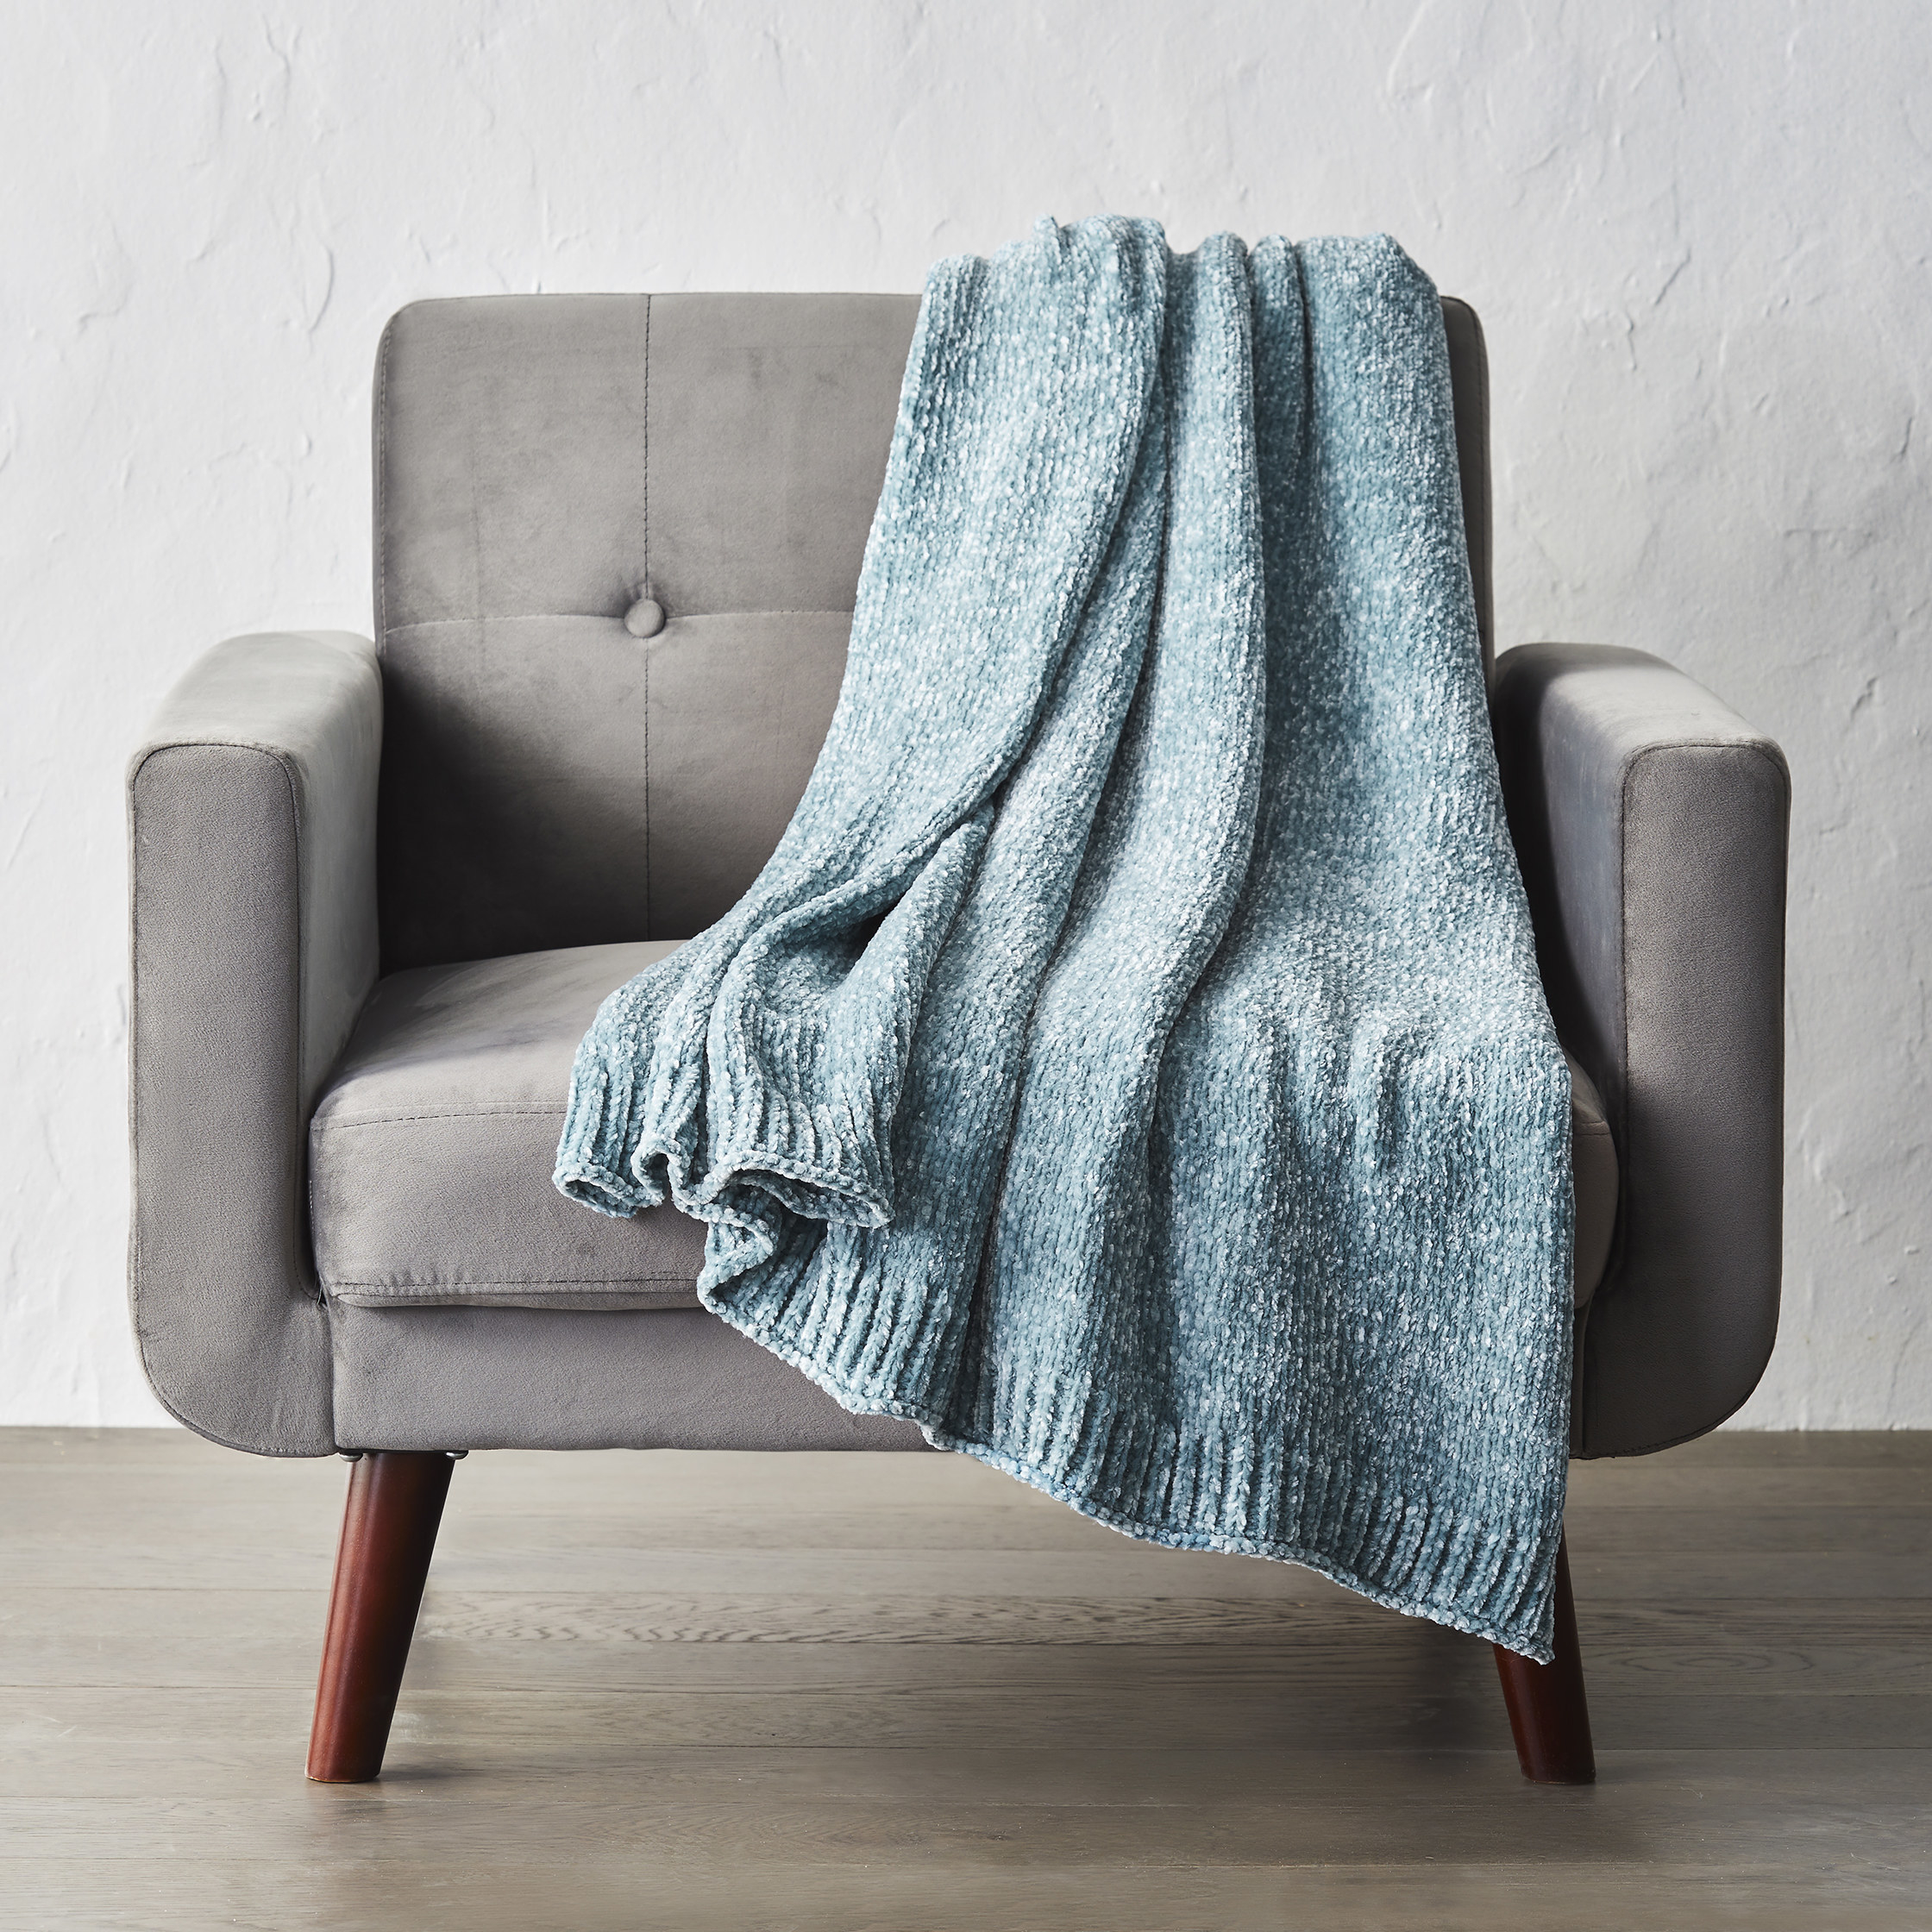 The blanket in blue